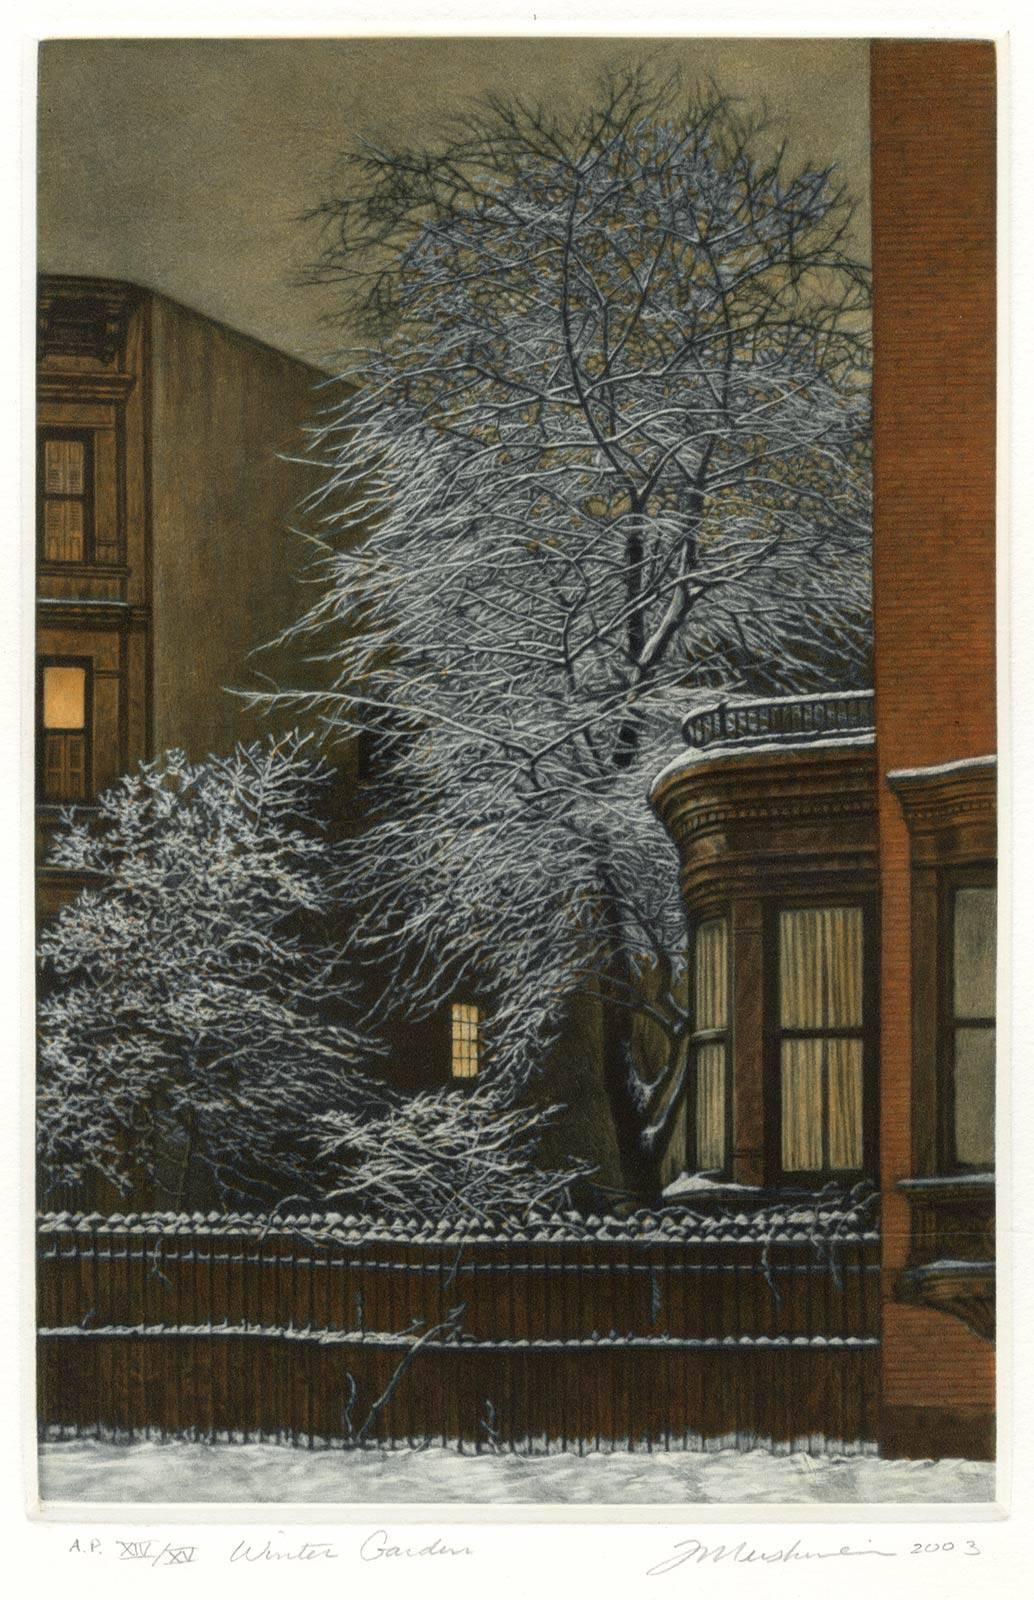 Winter Garden (Snow covered trees contrast with warm light inside brownstones)